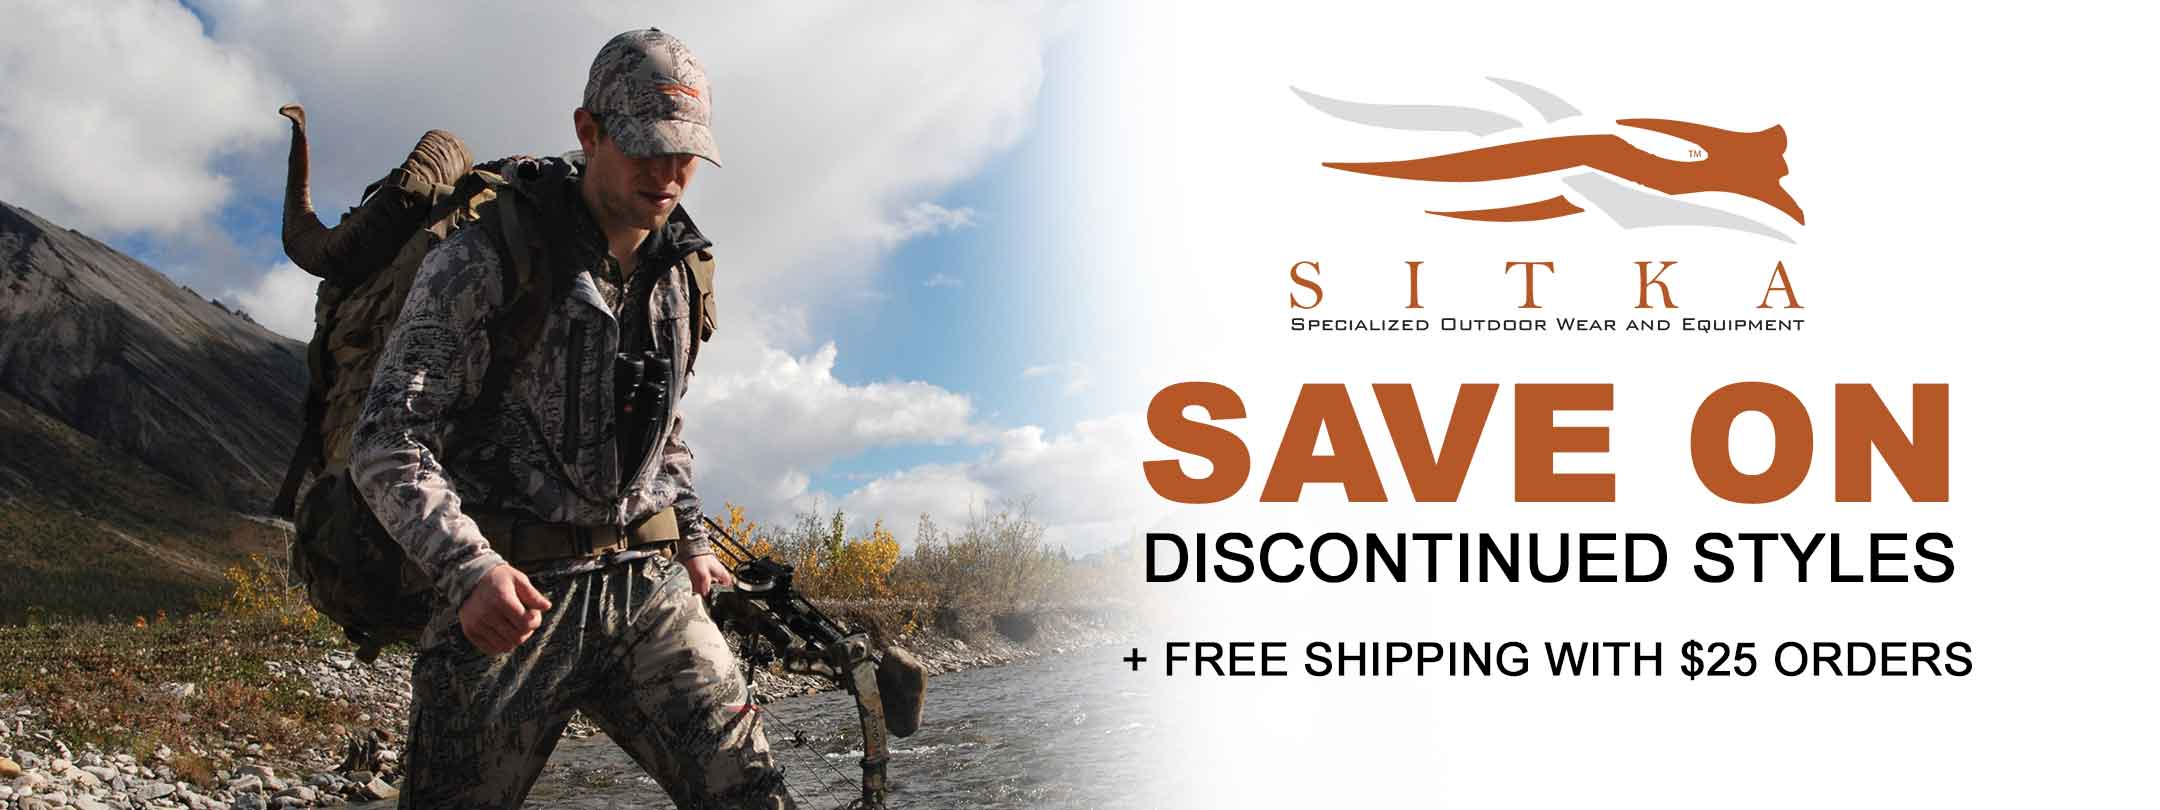 Save on Sitka Discontinued Styles + Free Shipping with $25 Orders